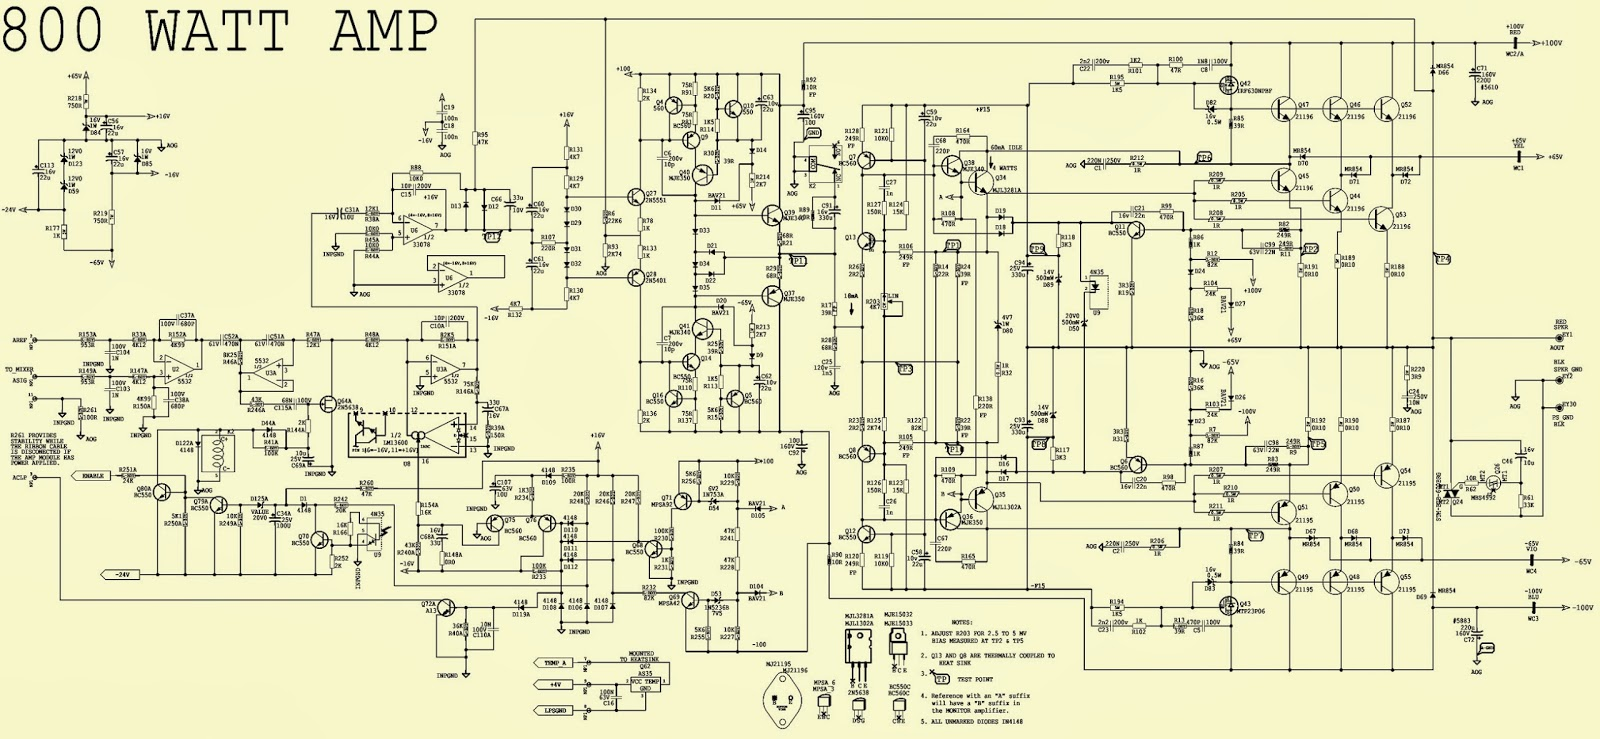 Schematic Diagram Of Sakura Amplifier 700w Power With 2sc5200 2sa1943 Draw Your Wiring 800watts Circuit